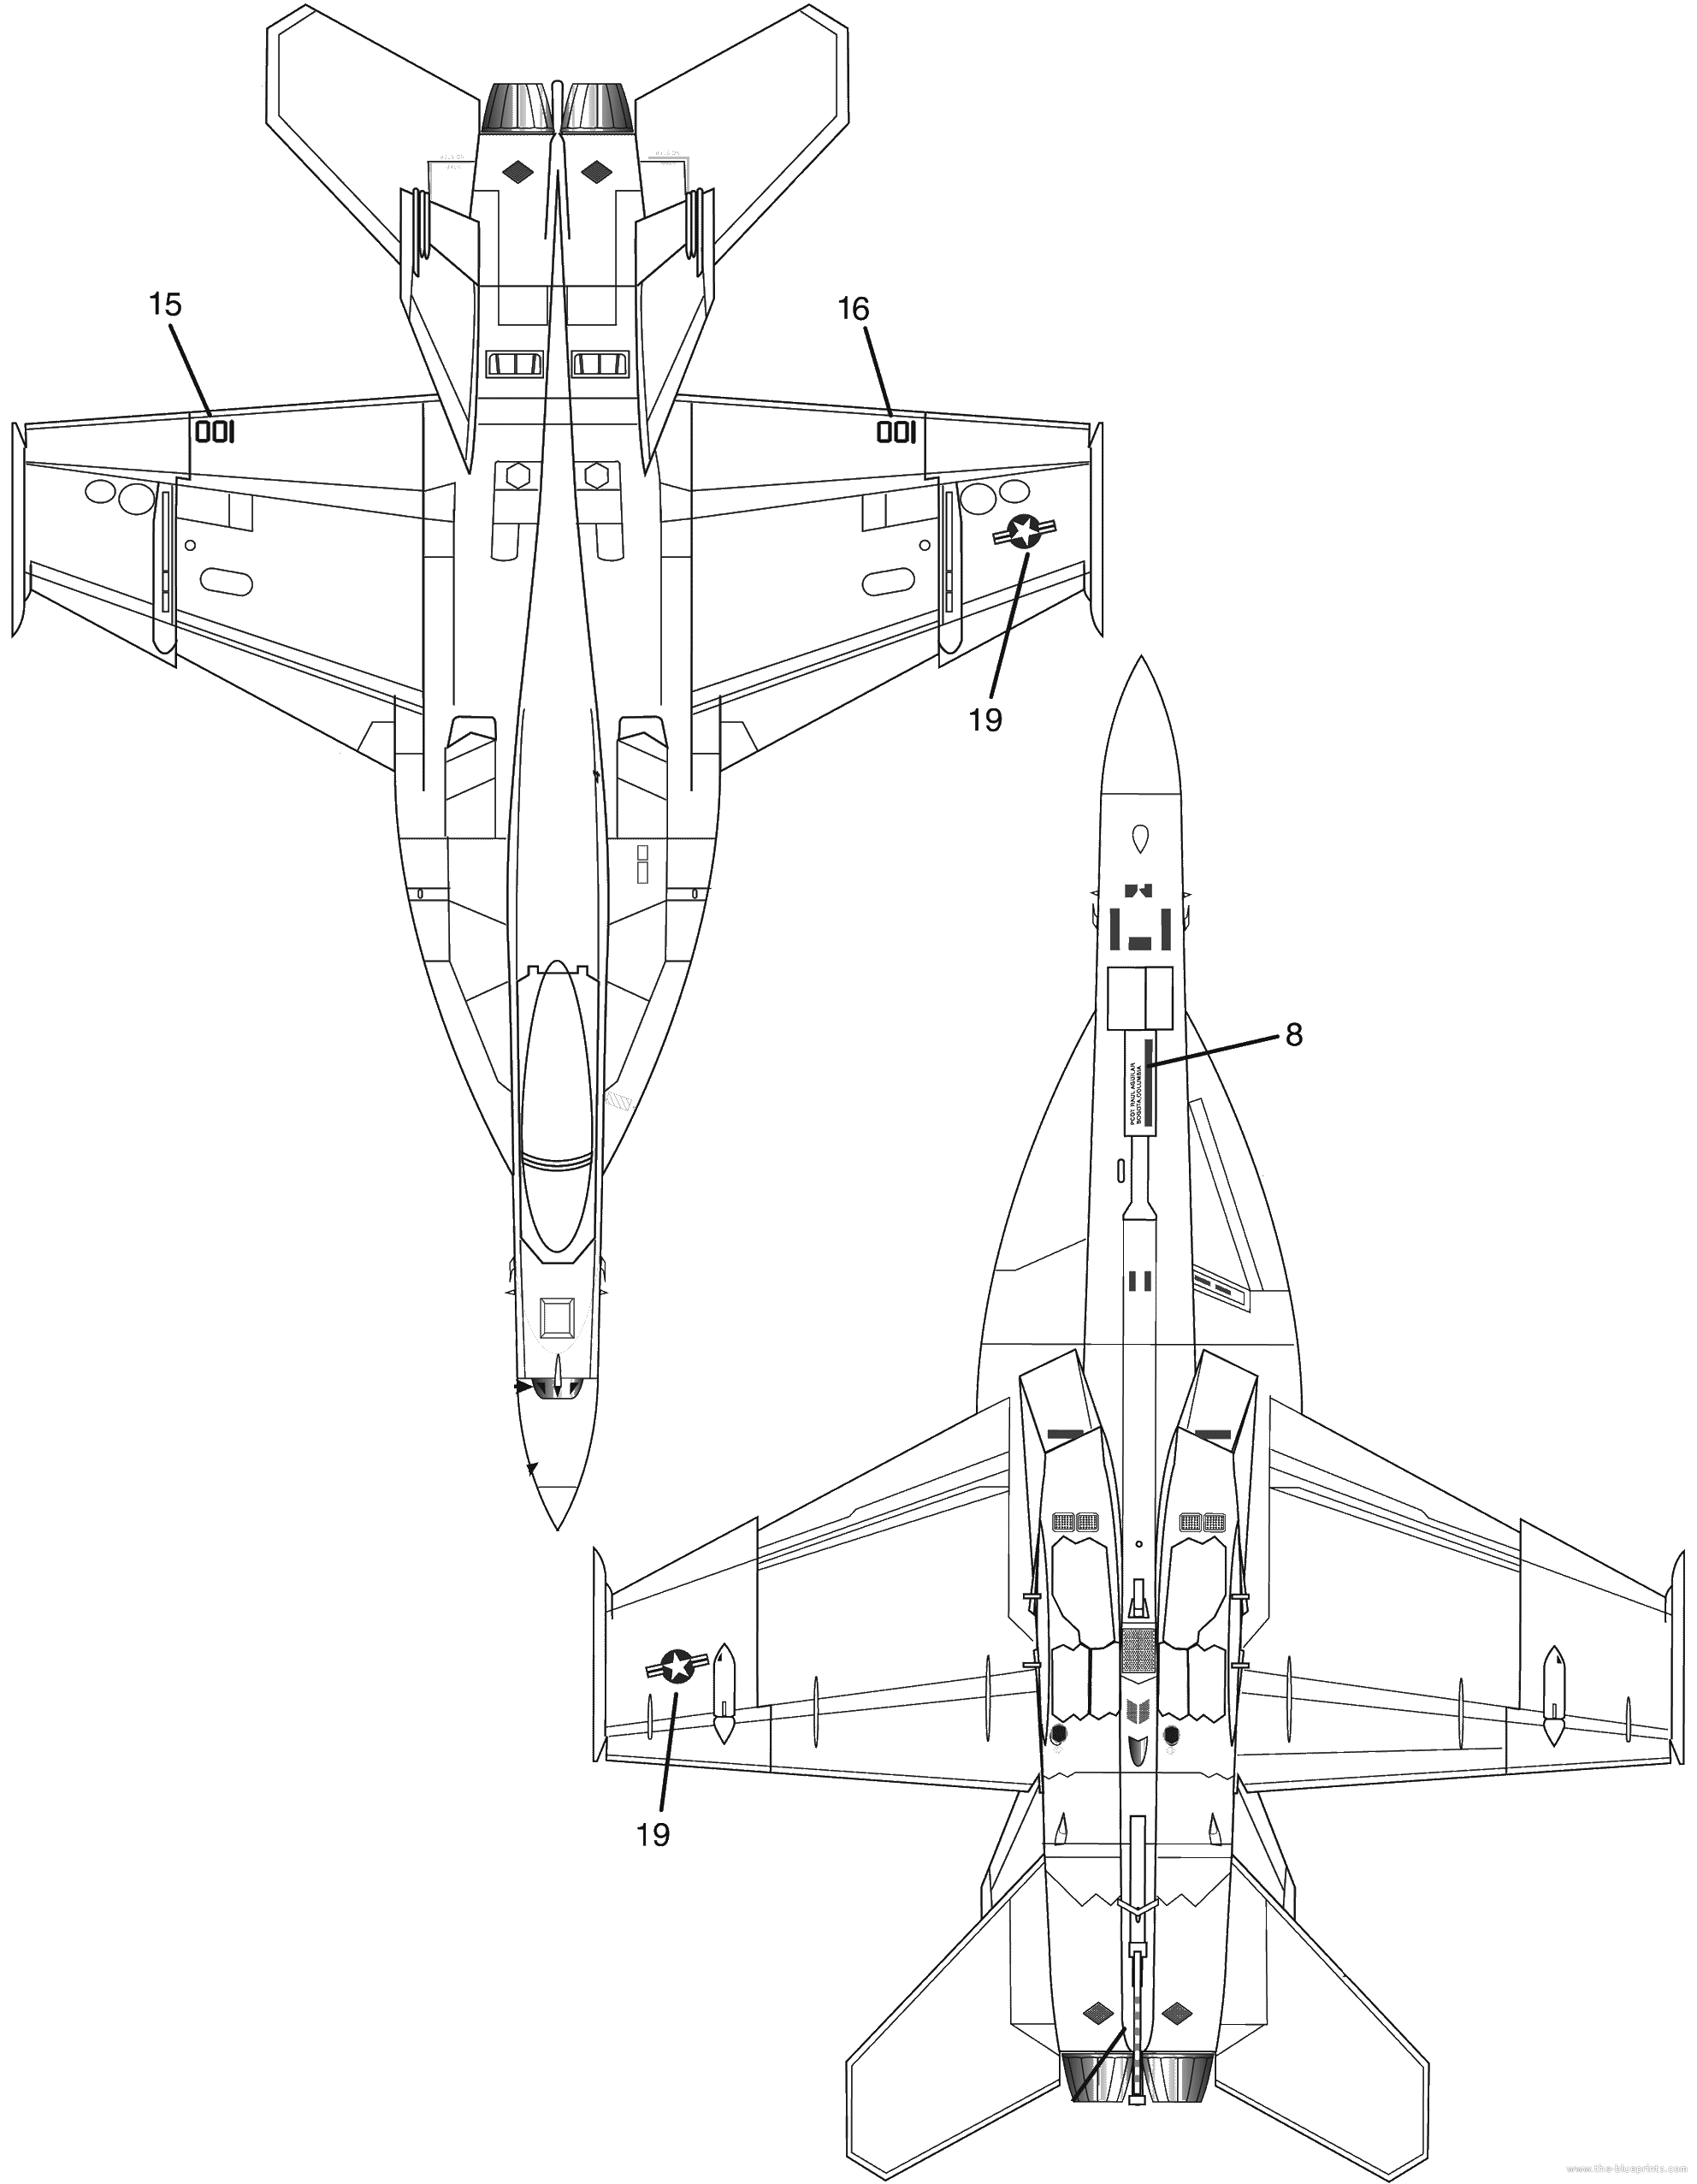 F 18 Drawing At Free For Personal Use F18 Jet Engine Diagram 1984x2553